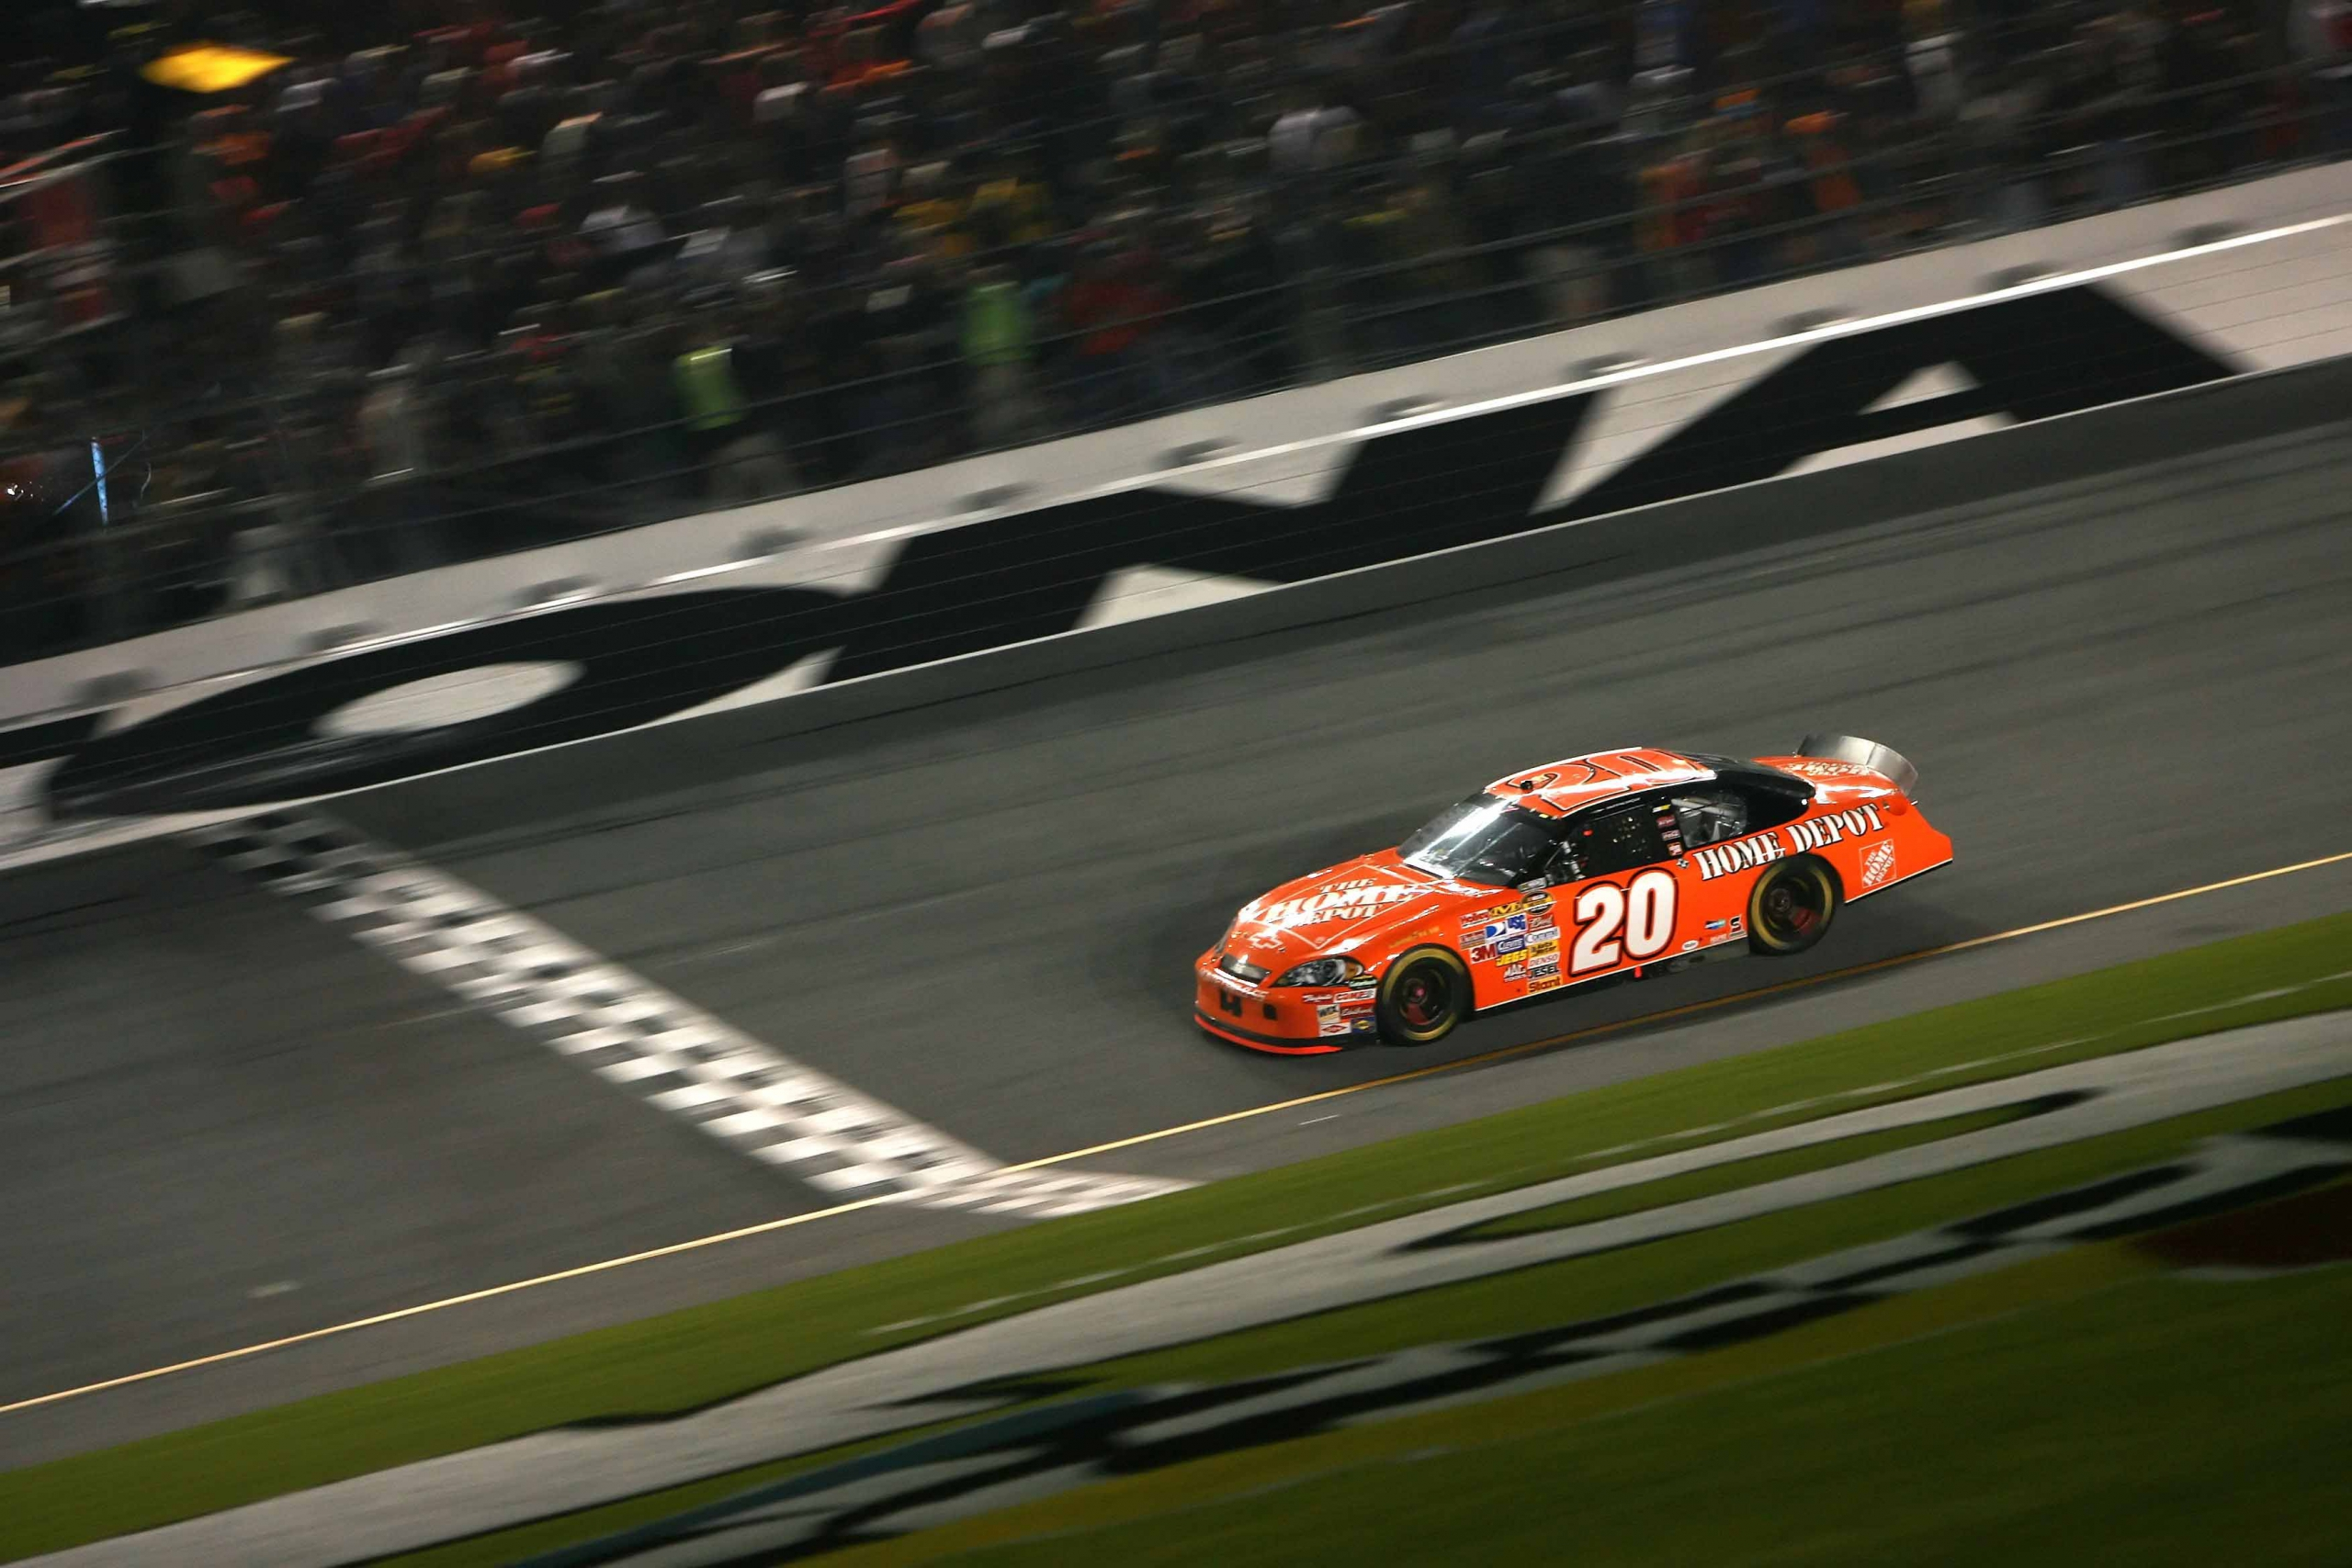 2007 Tony Stewart at Daytona International Speedway - NASCAR